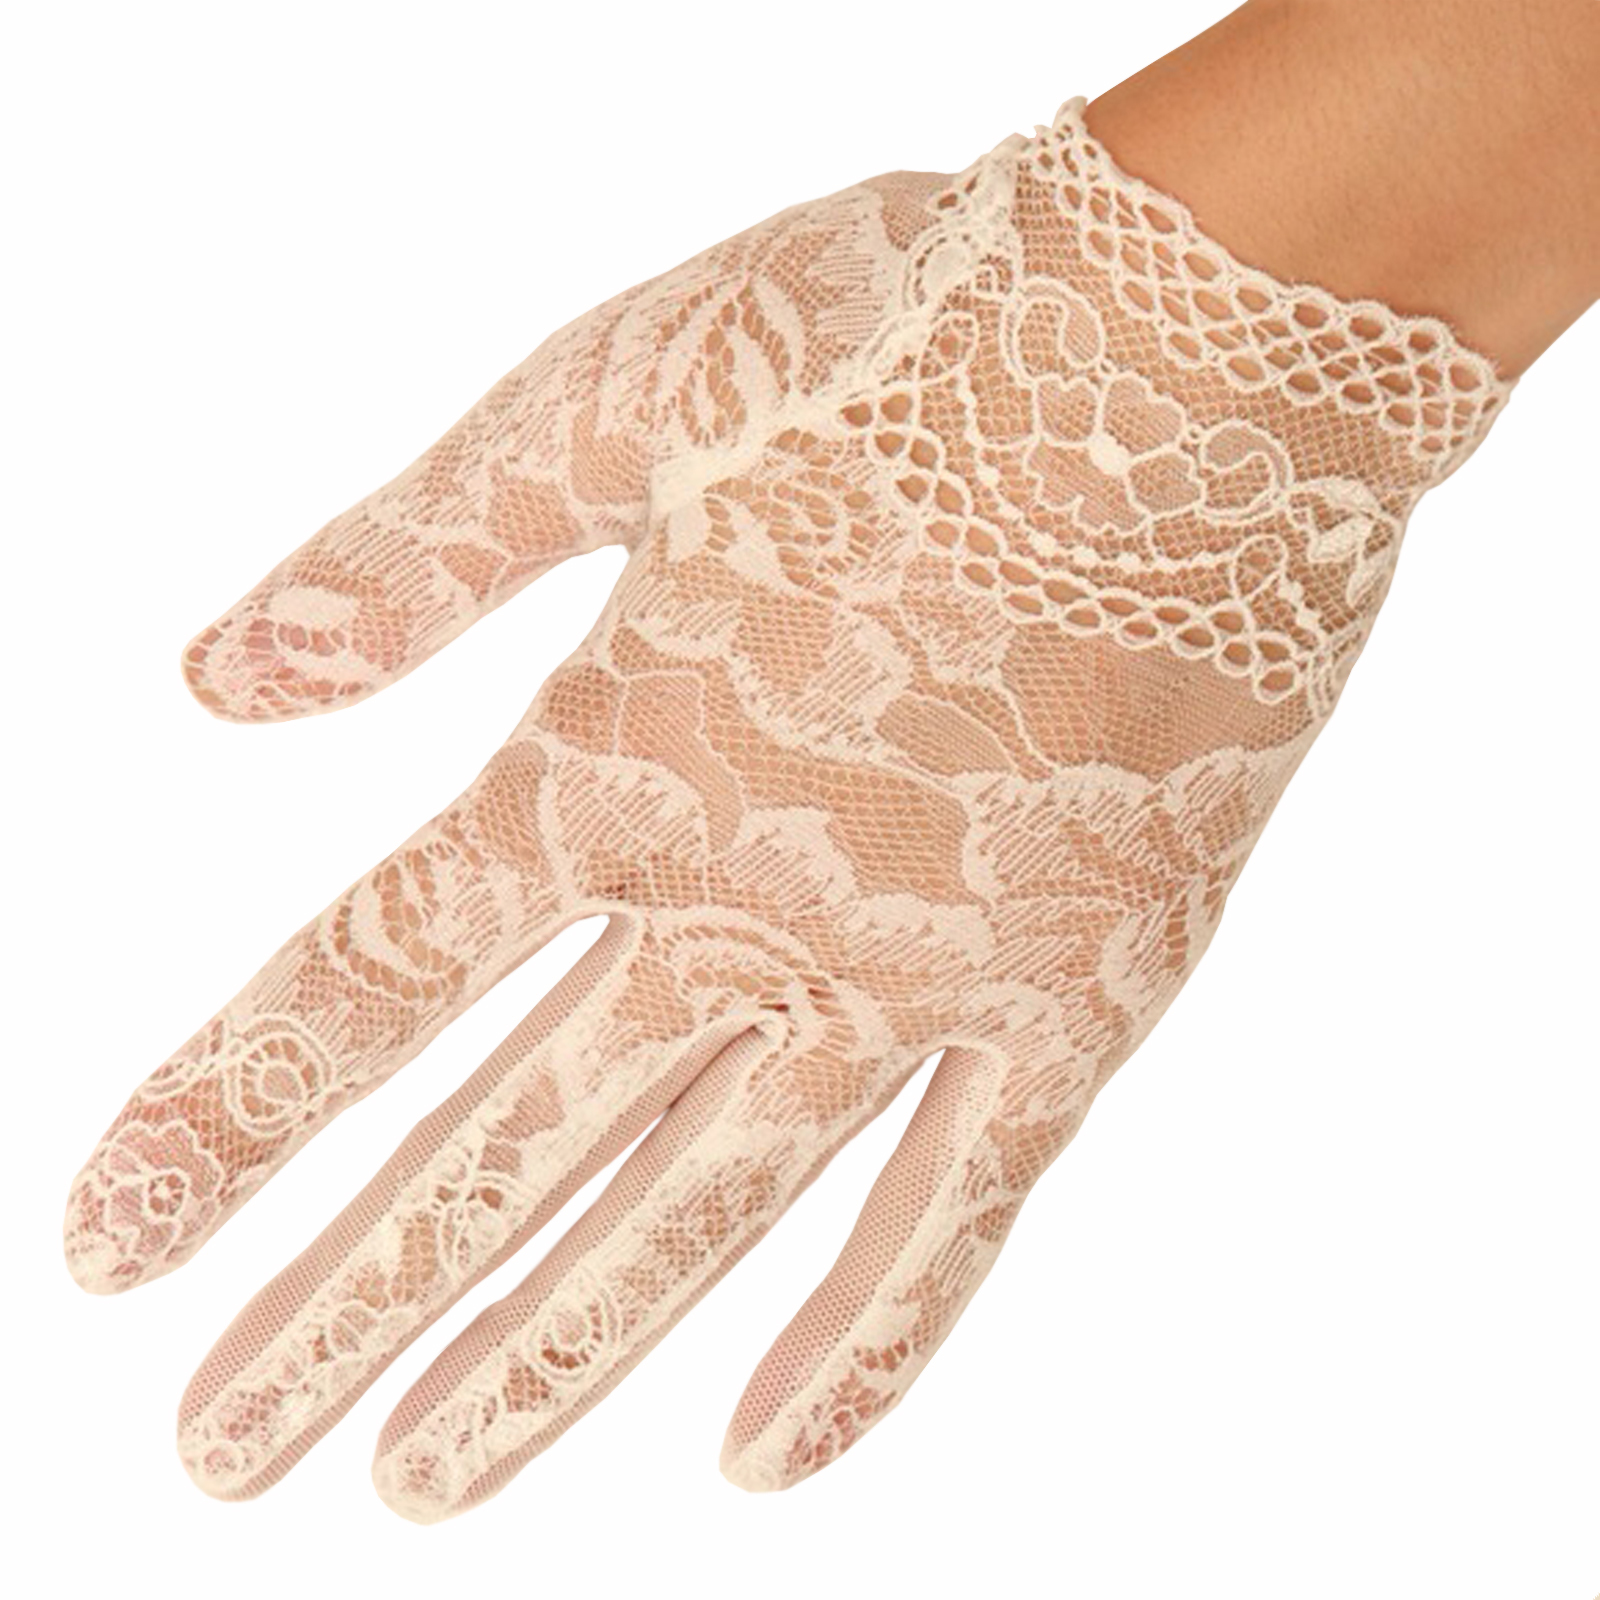 Cornelia James - Moira - White Short Lace Gloves